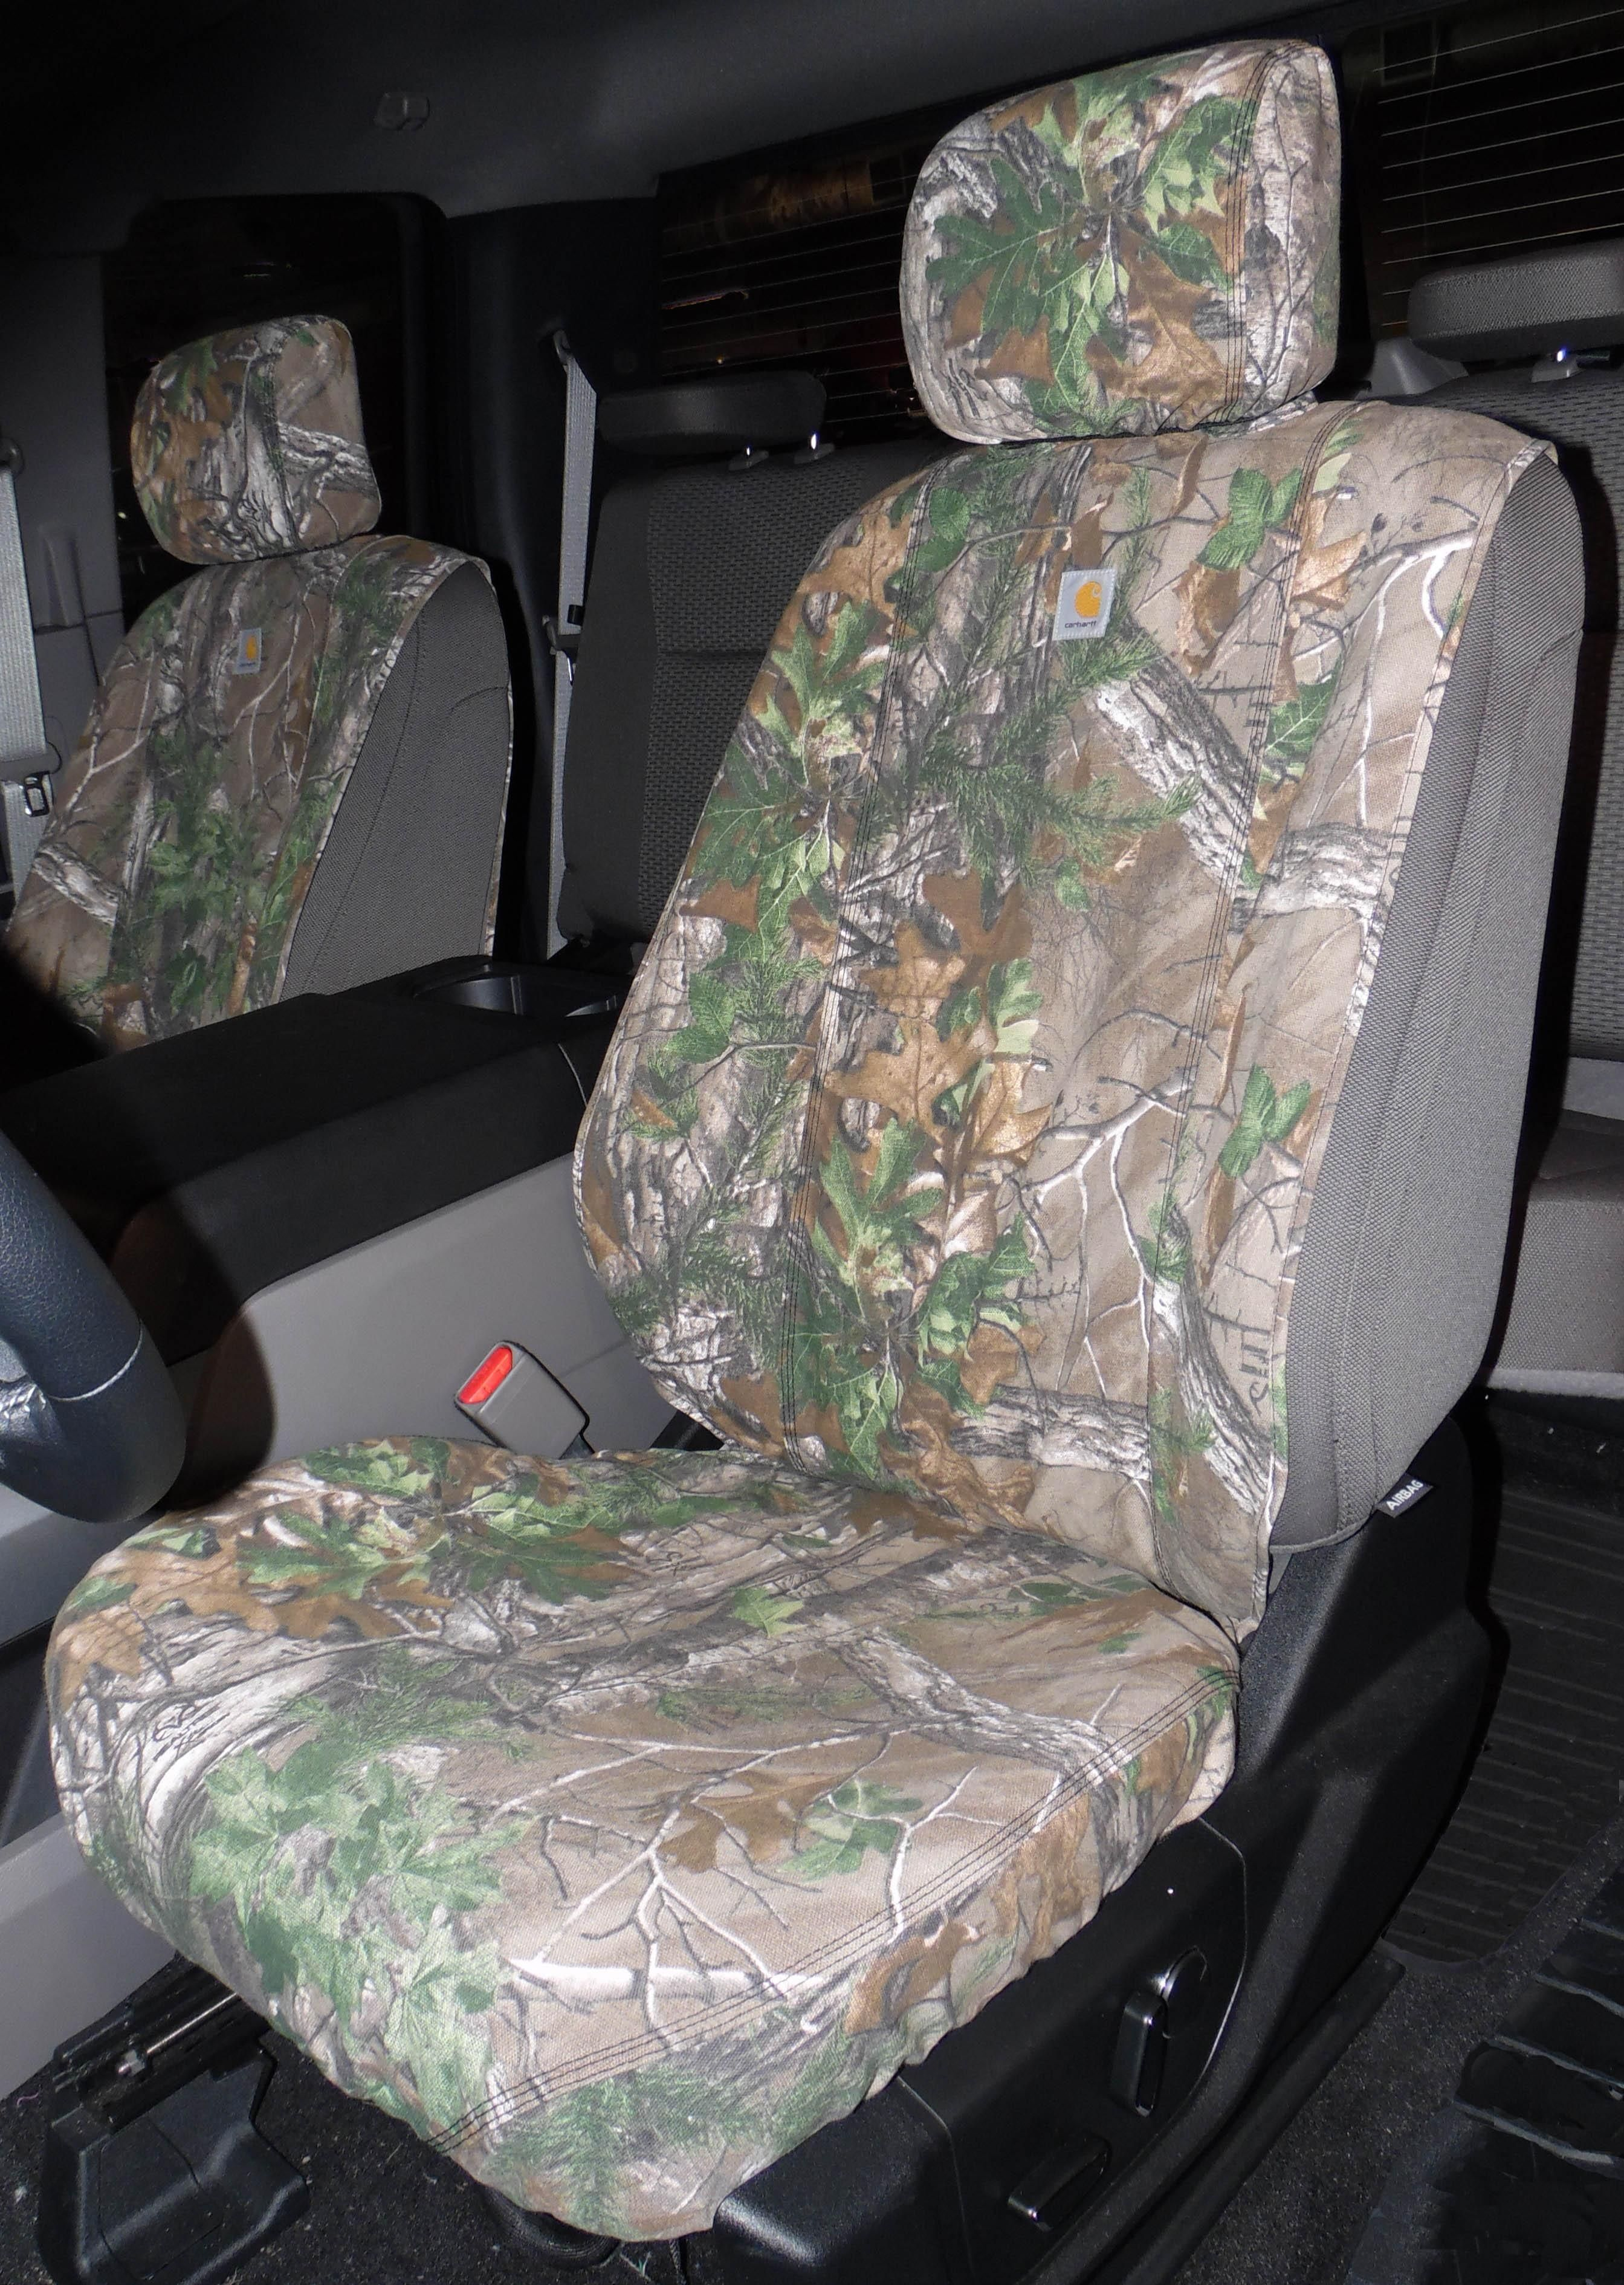 Seat Savers - Rear Captains Chair, Realtree Xtra Green